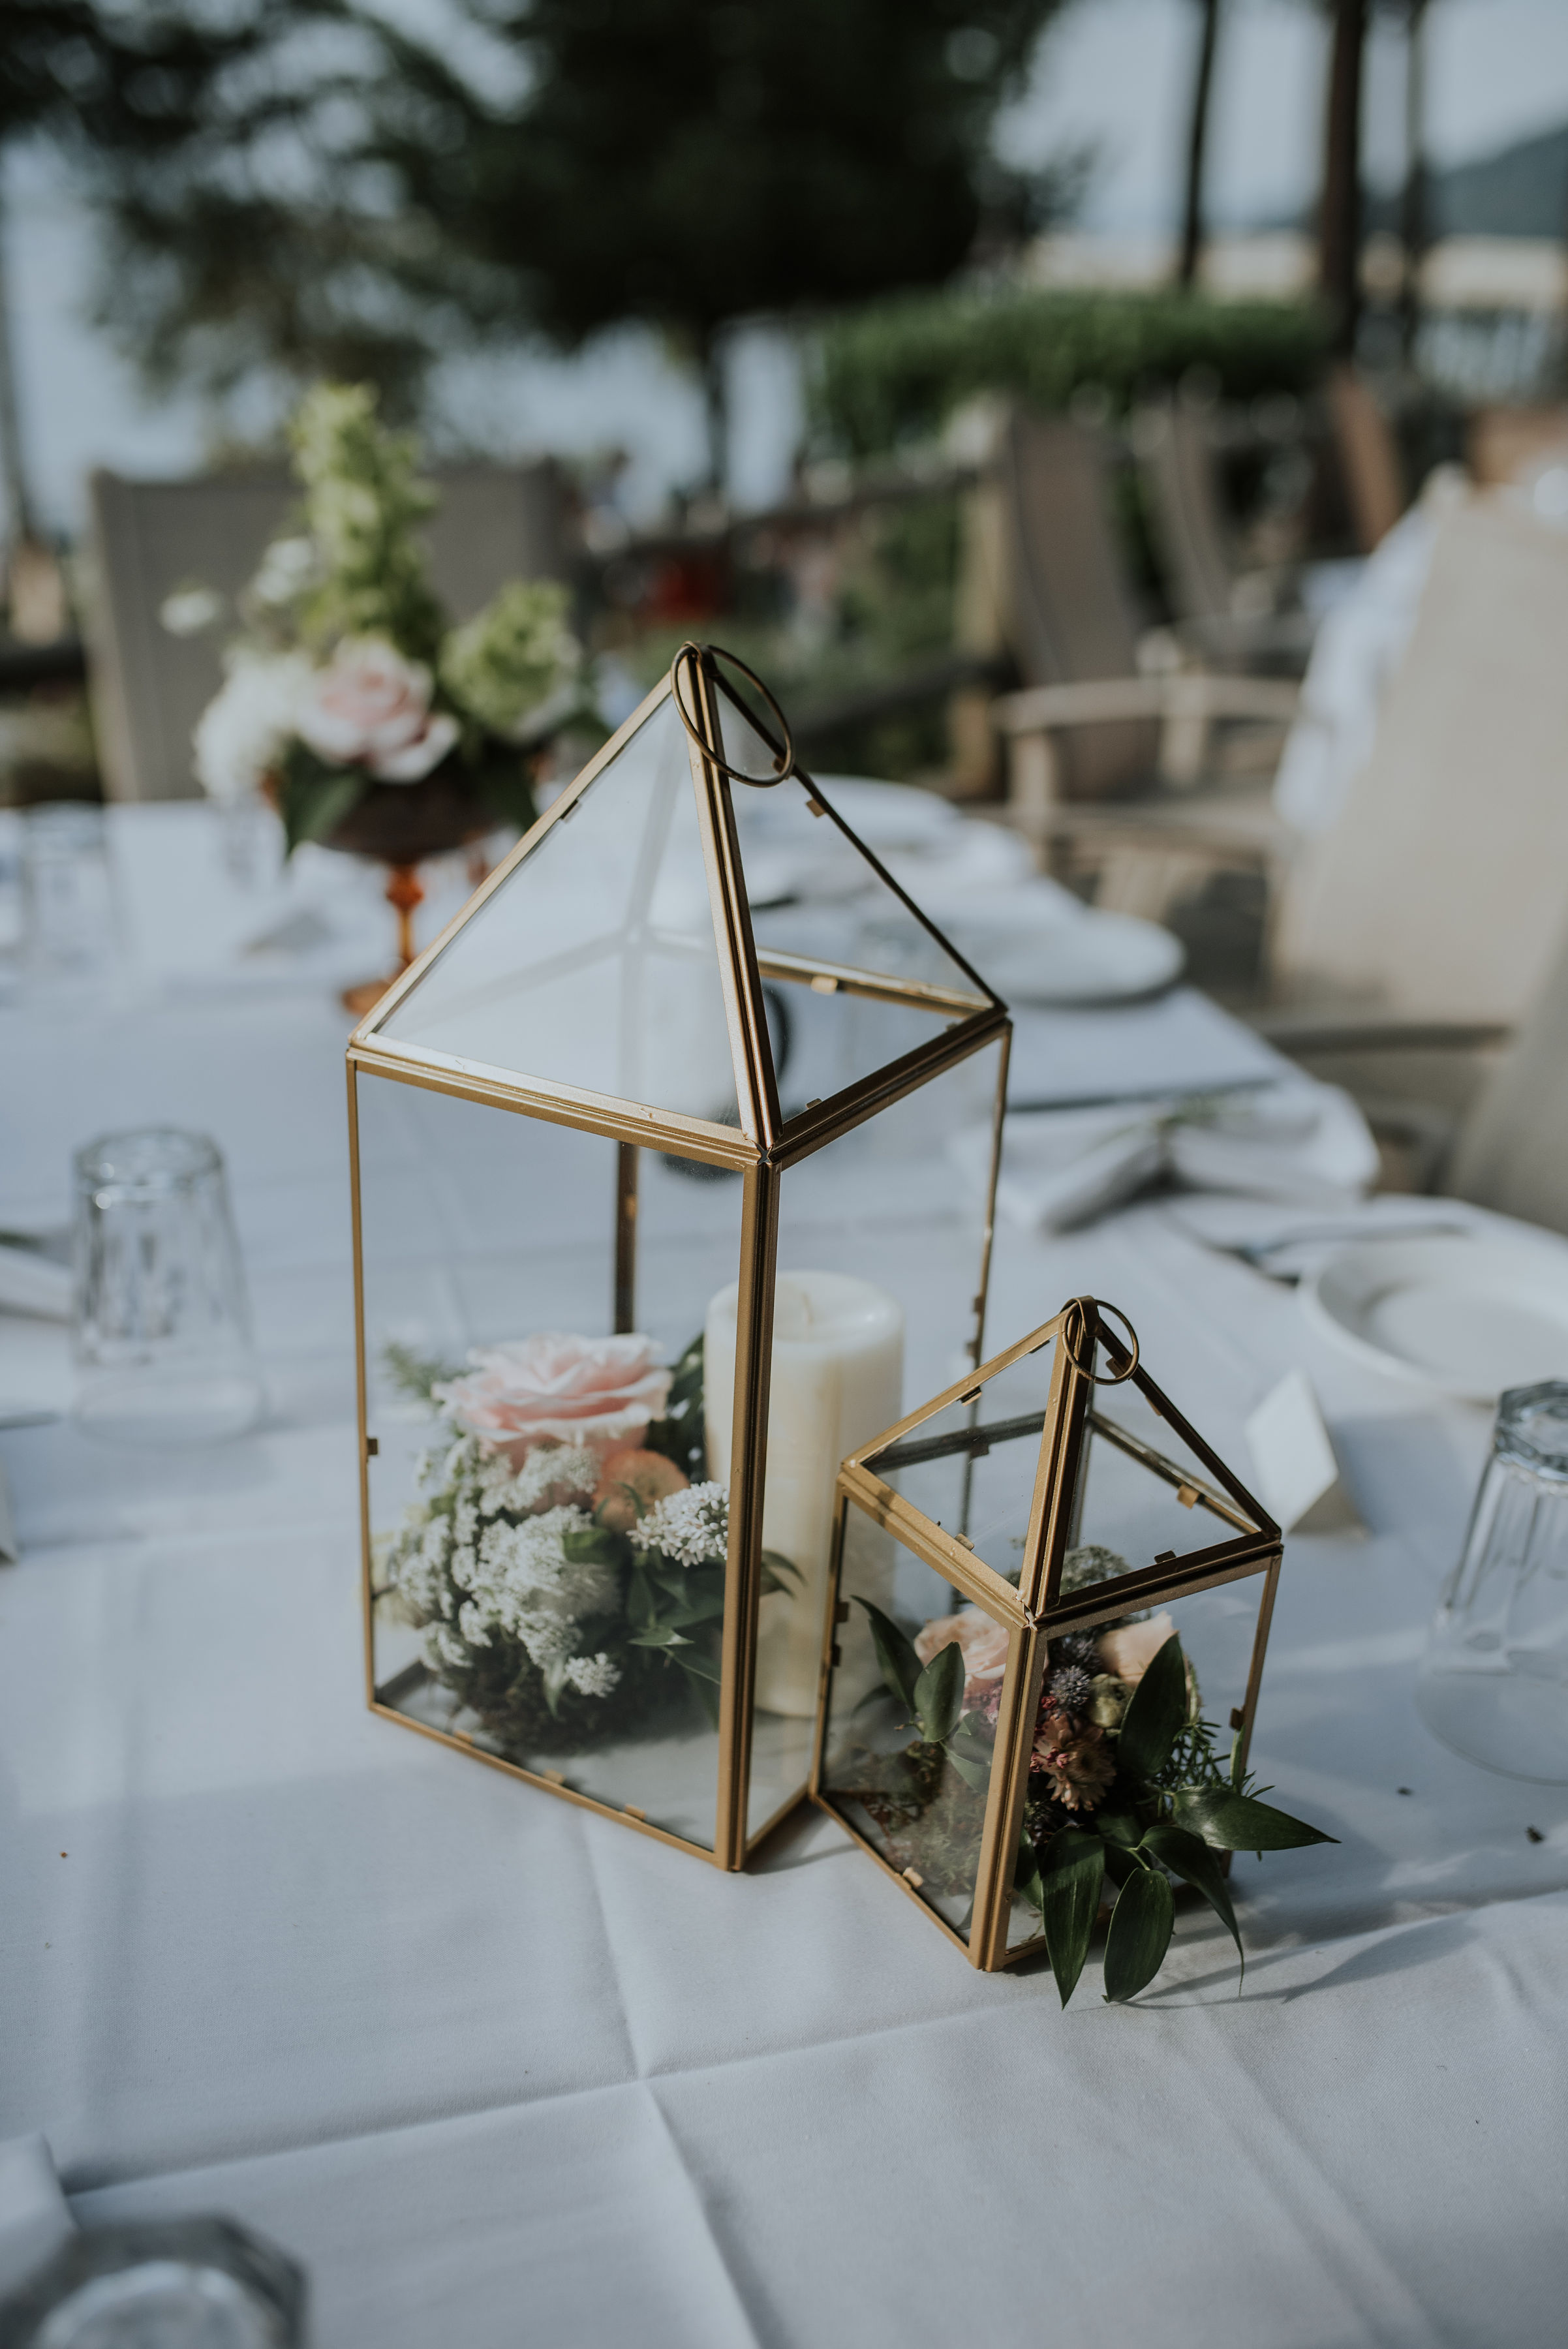 Centerpieces in geometric gold lanterns